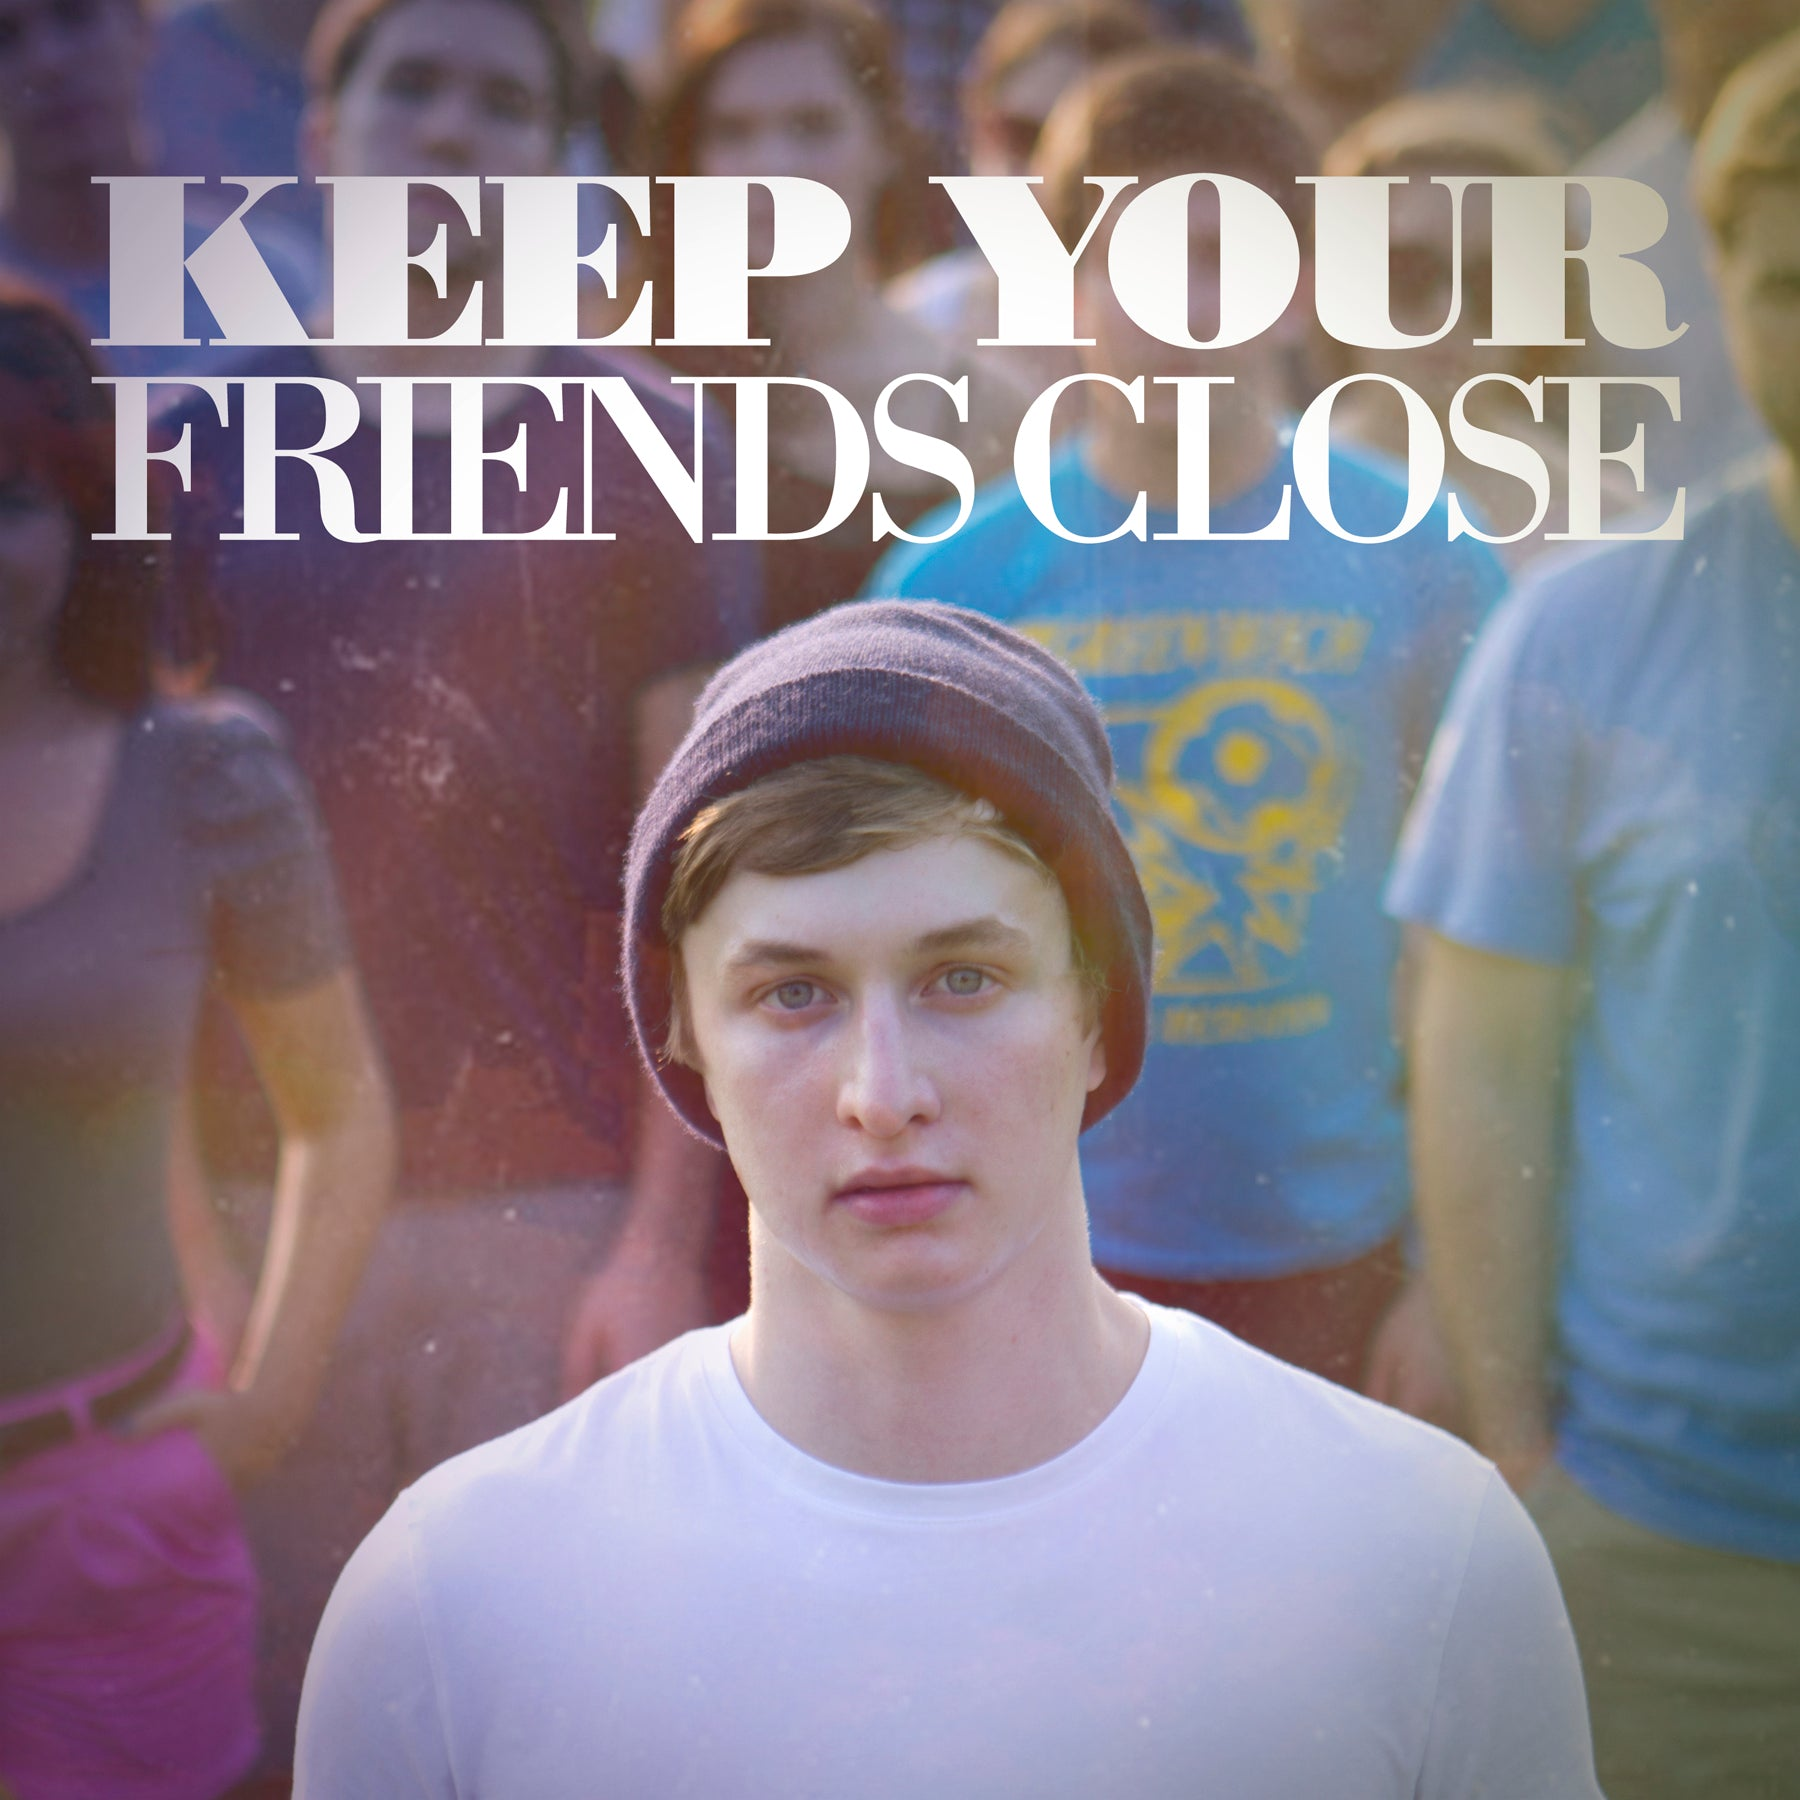 Keep Your Friends Close [free download]